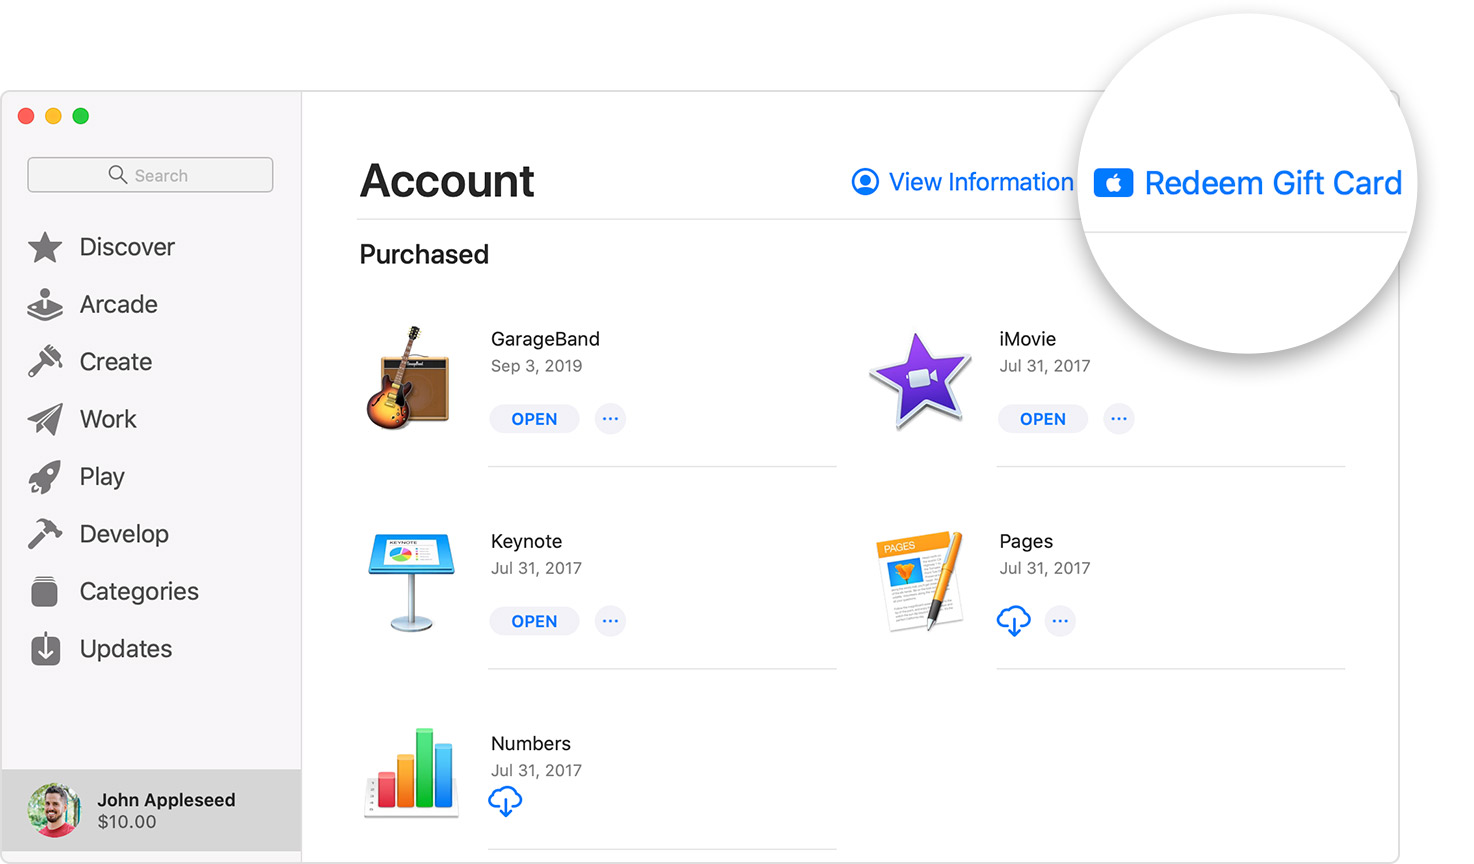 Mac screenshot showing the Redeem Gift Card button in the App Store.